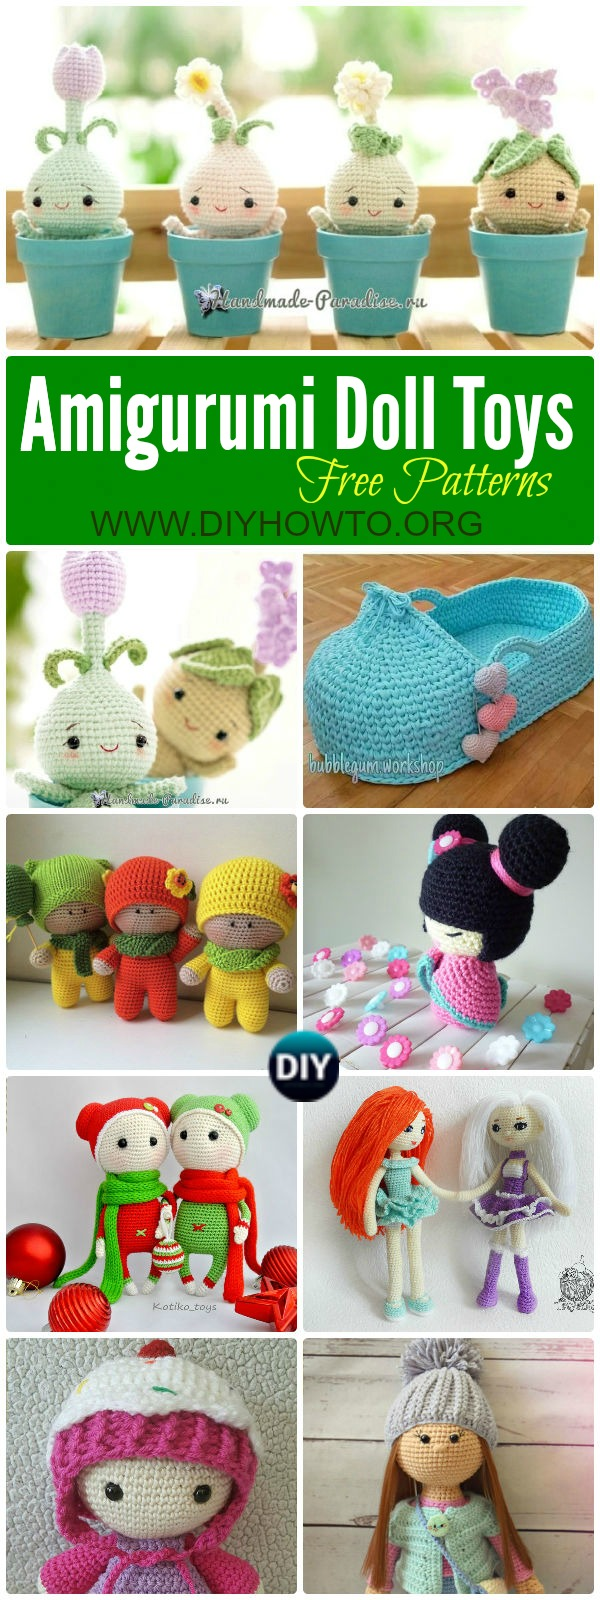 Collection of Crochet Doll Toys Free Patterns: Crochet Dolls, Crochet Toys. Amigurumi Dolls Free Patterns, Crochet Doll Carrier